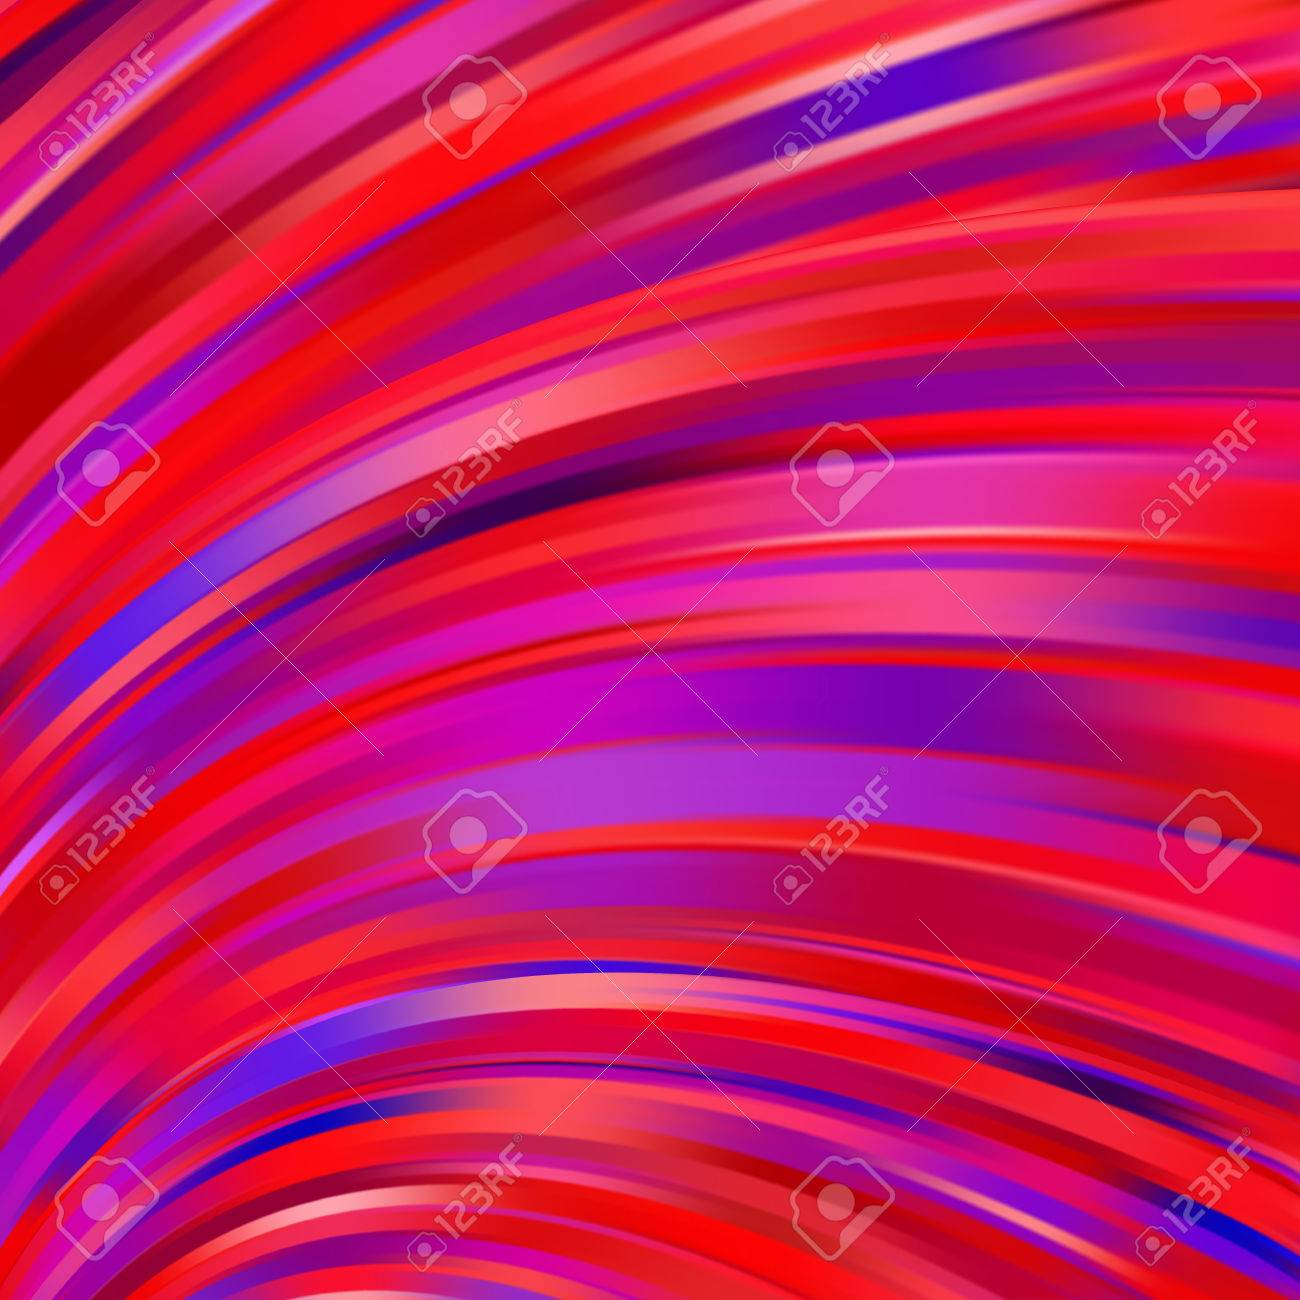 abstract pink, purple, red background with smooth lines. color